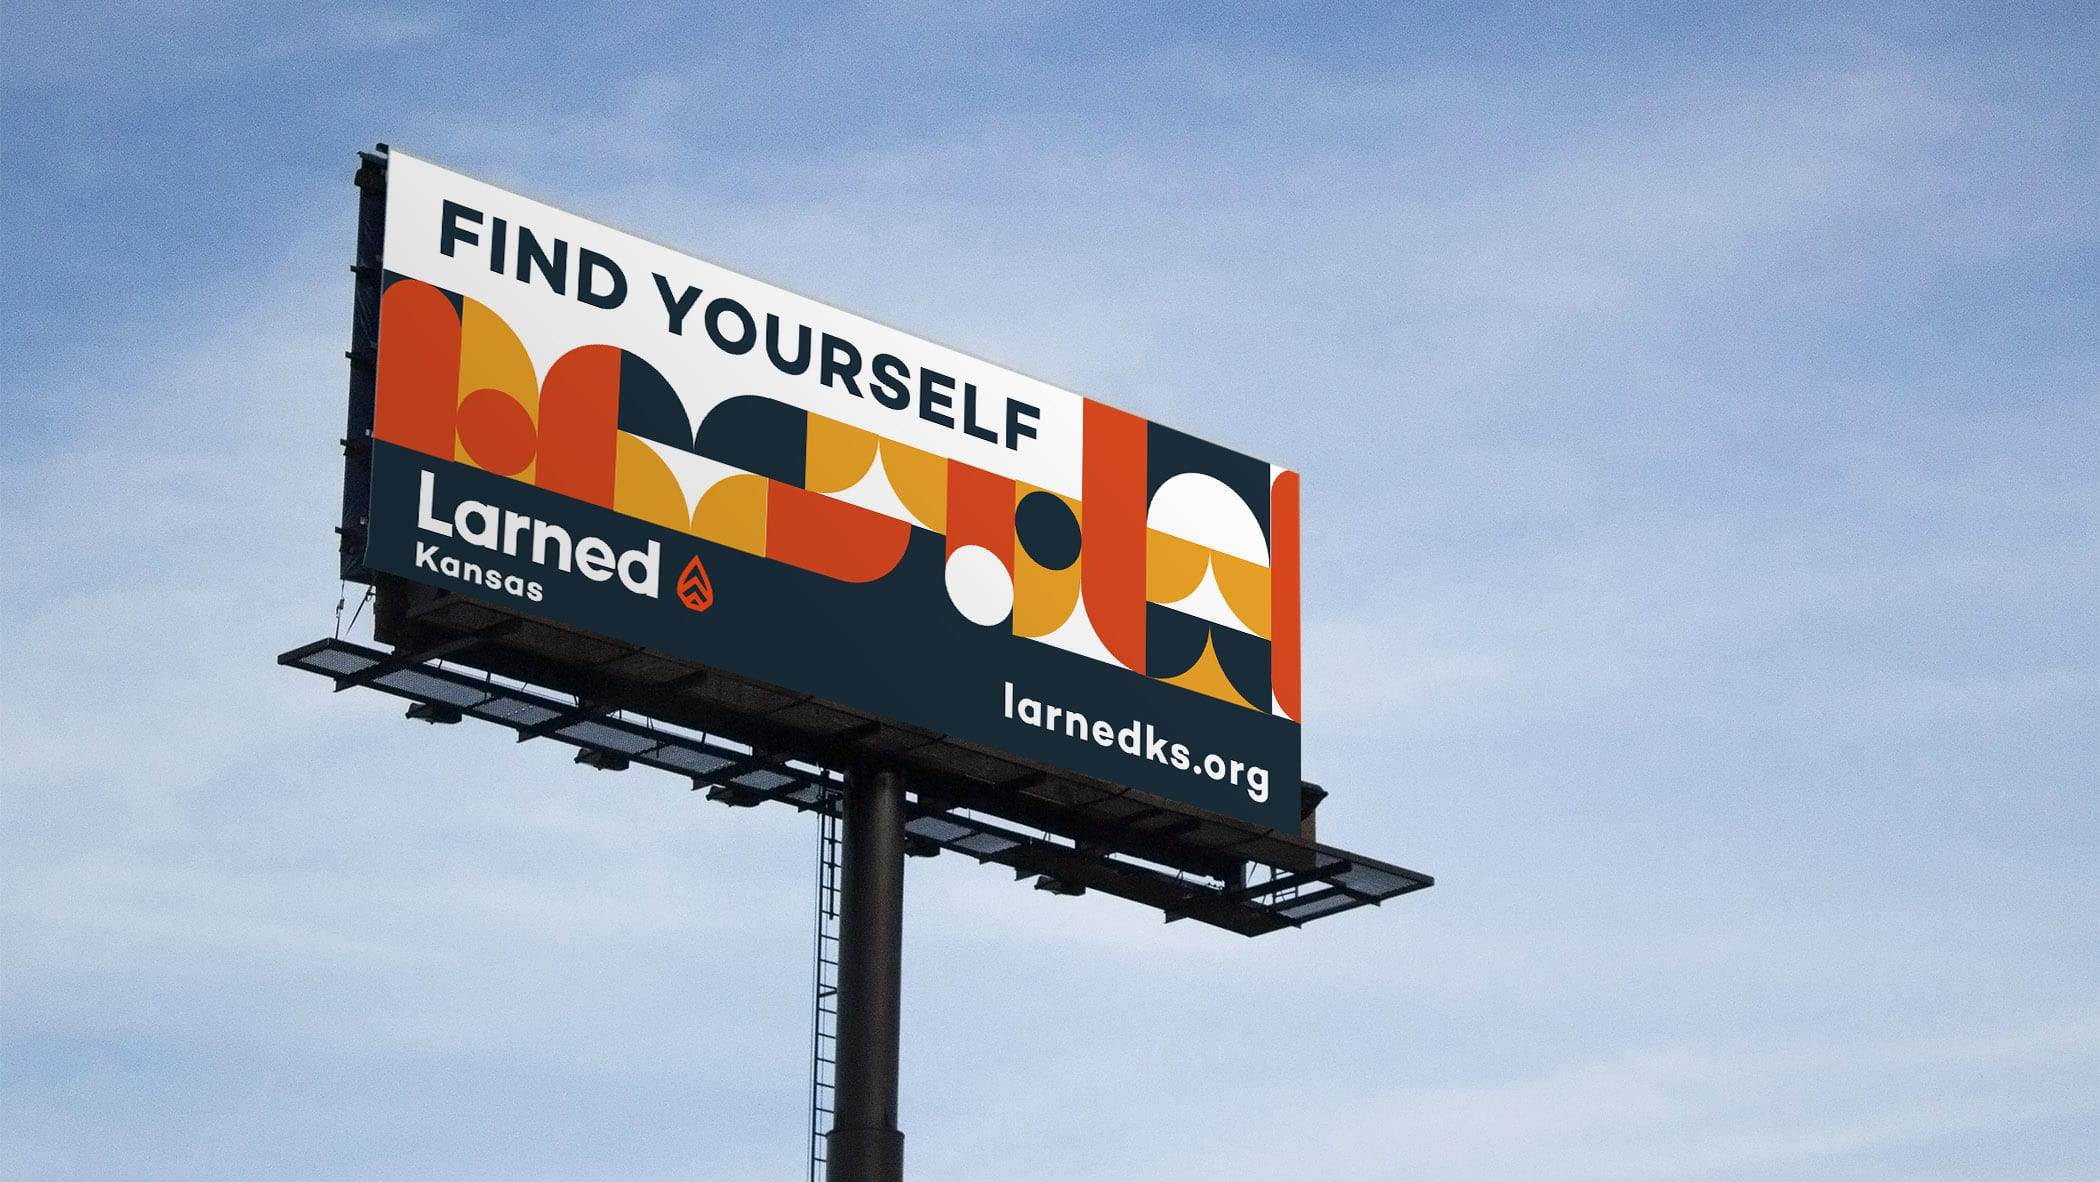 Larned Kansas Billboard